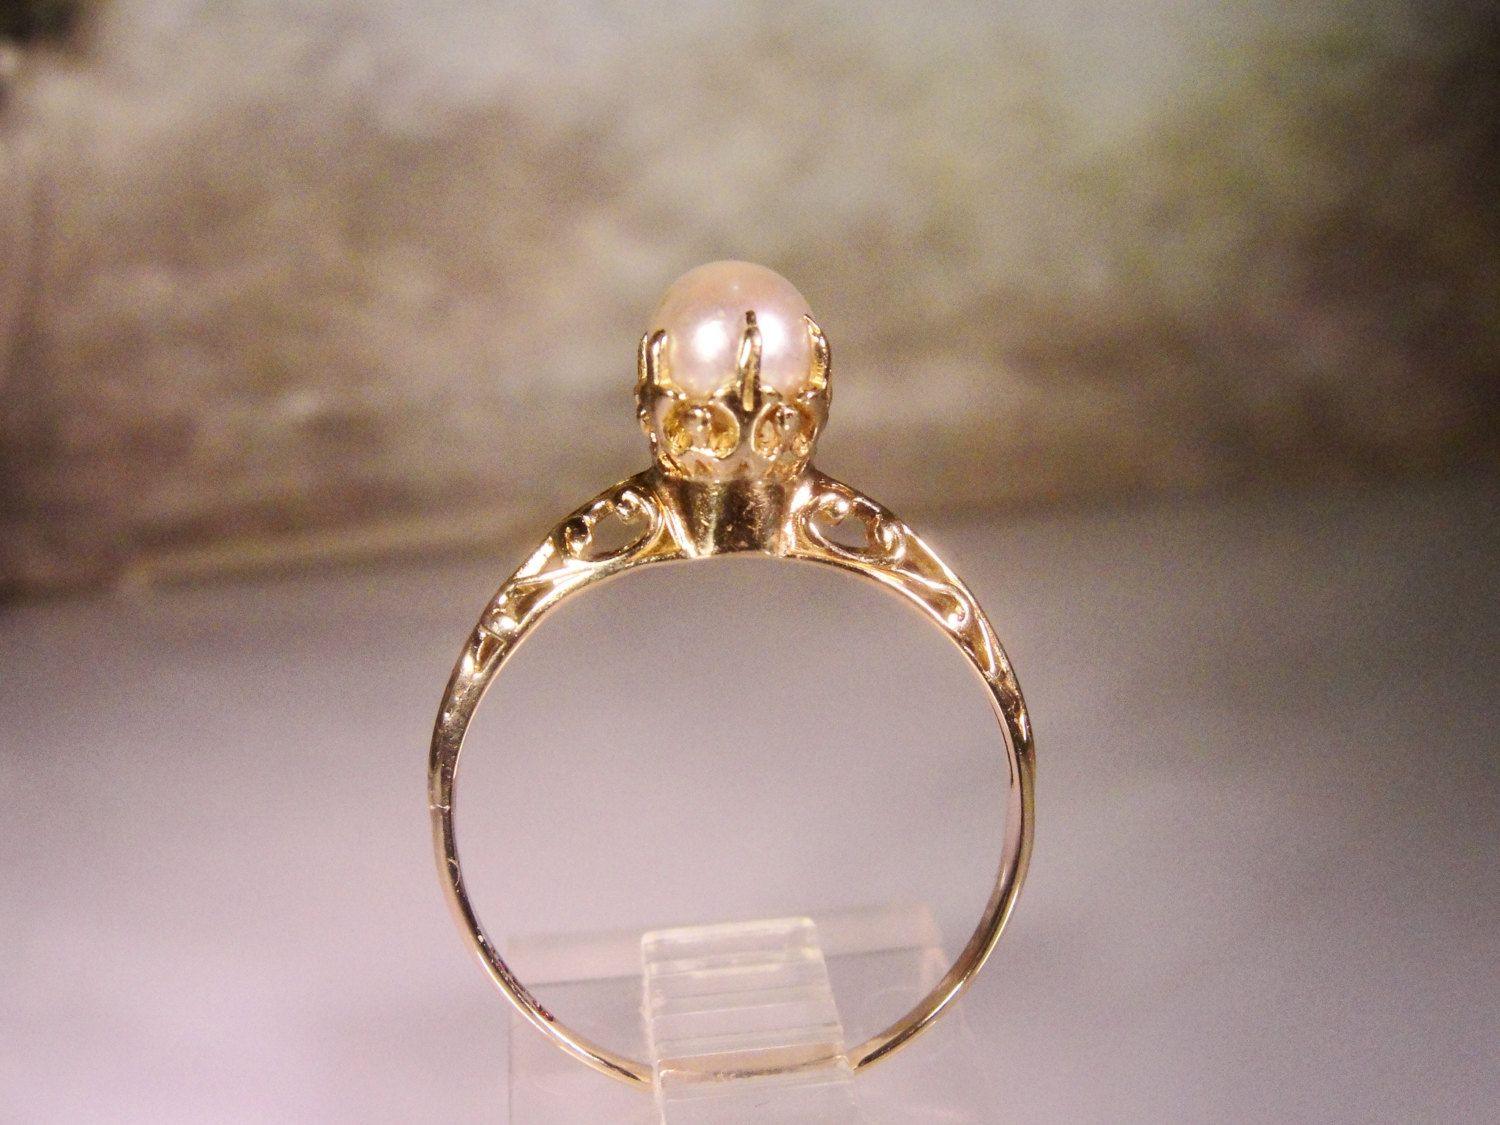 1900c, antique pearl solitaire ring, engagement ring, pearl ring